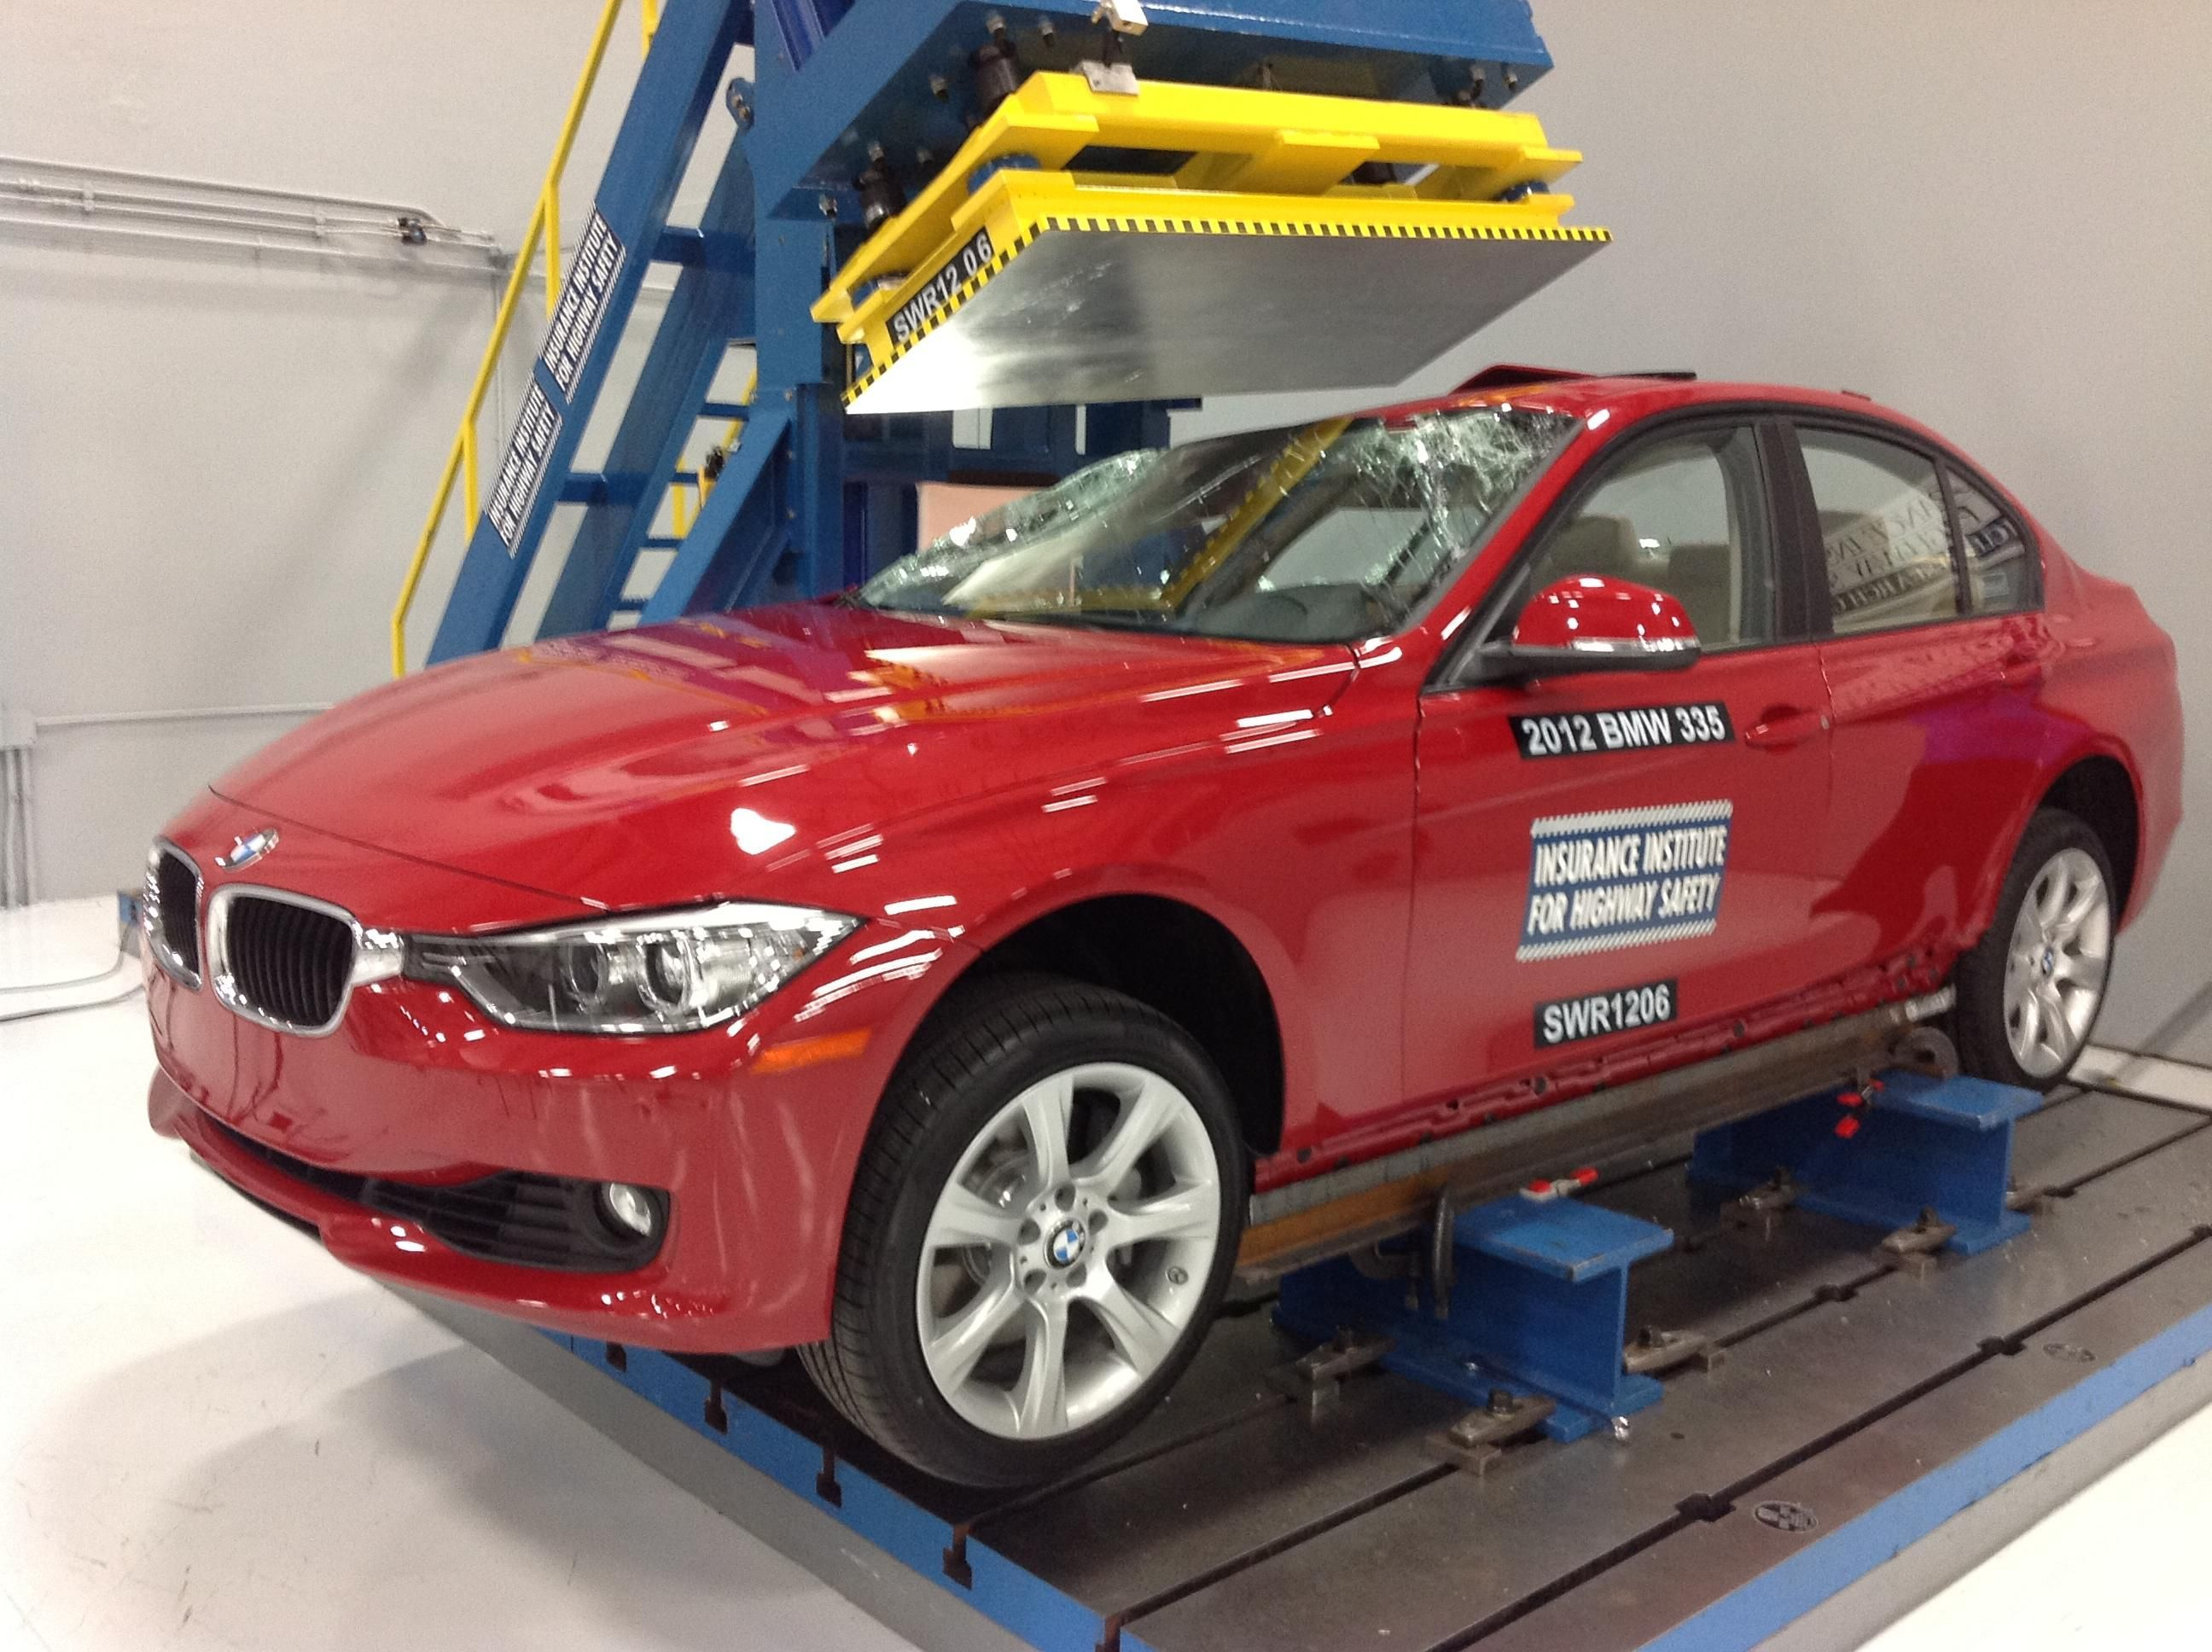 IIHS Names BMW 3 Series Sedan a 'Top Safety Pick'